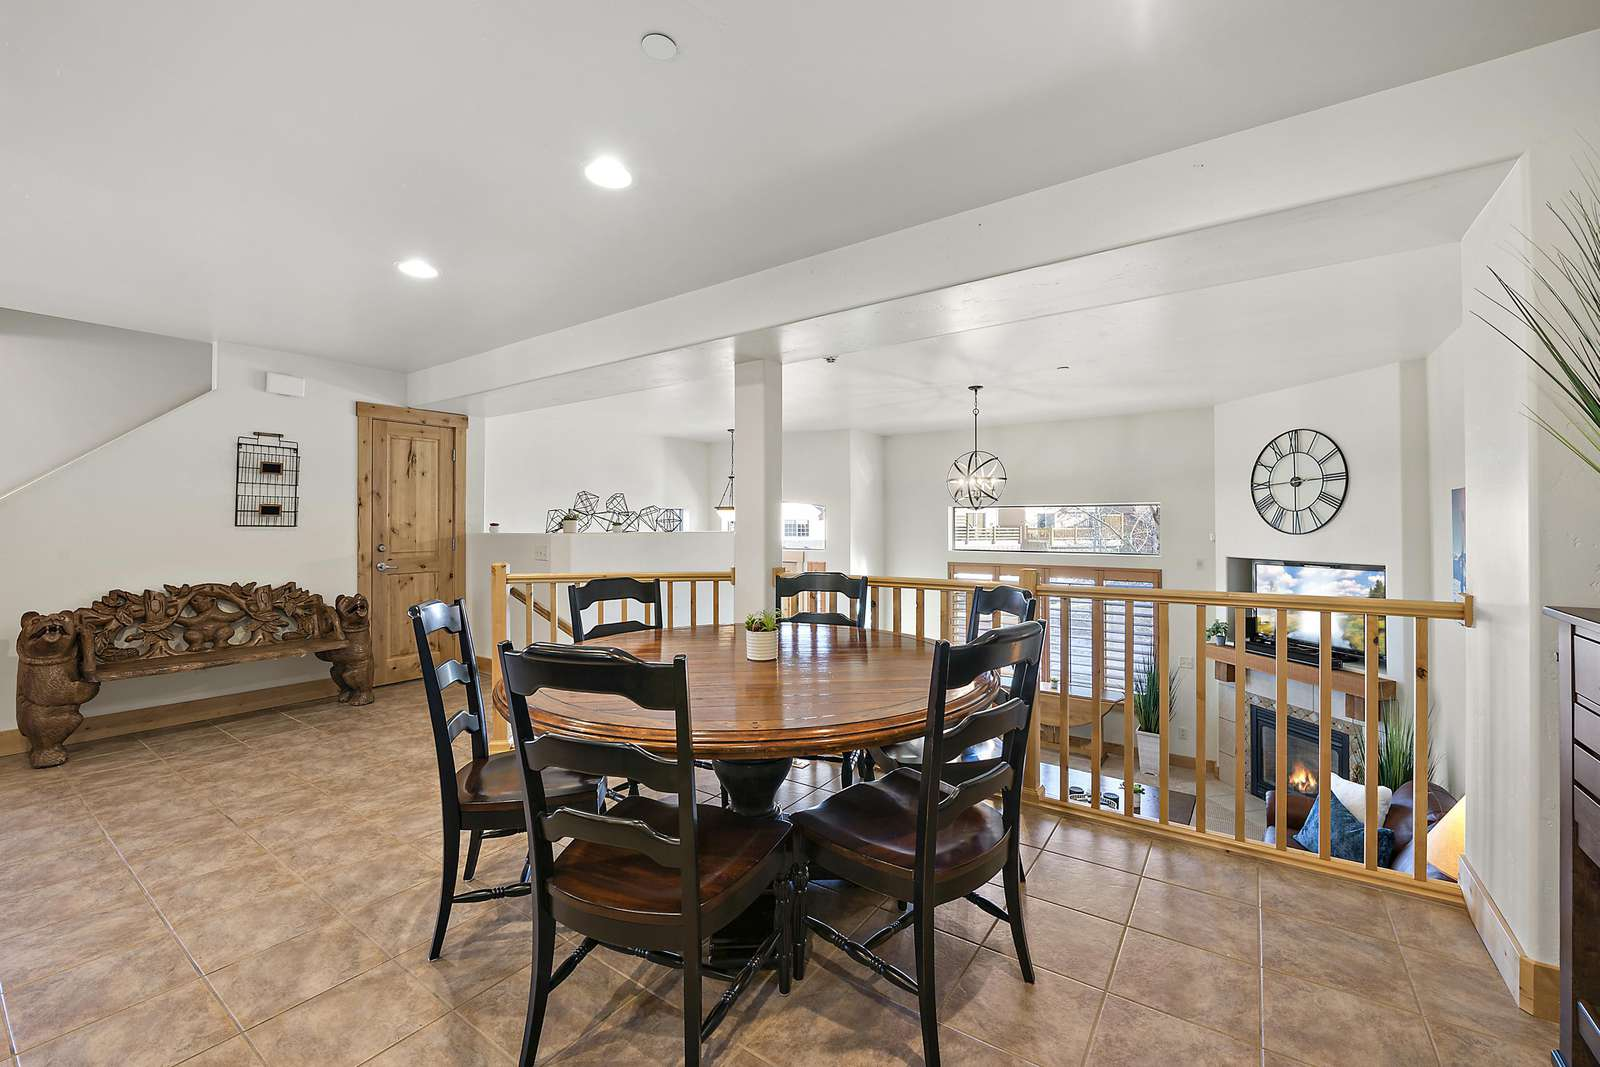 Dining area right above living space